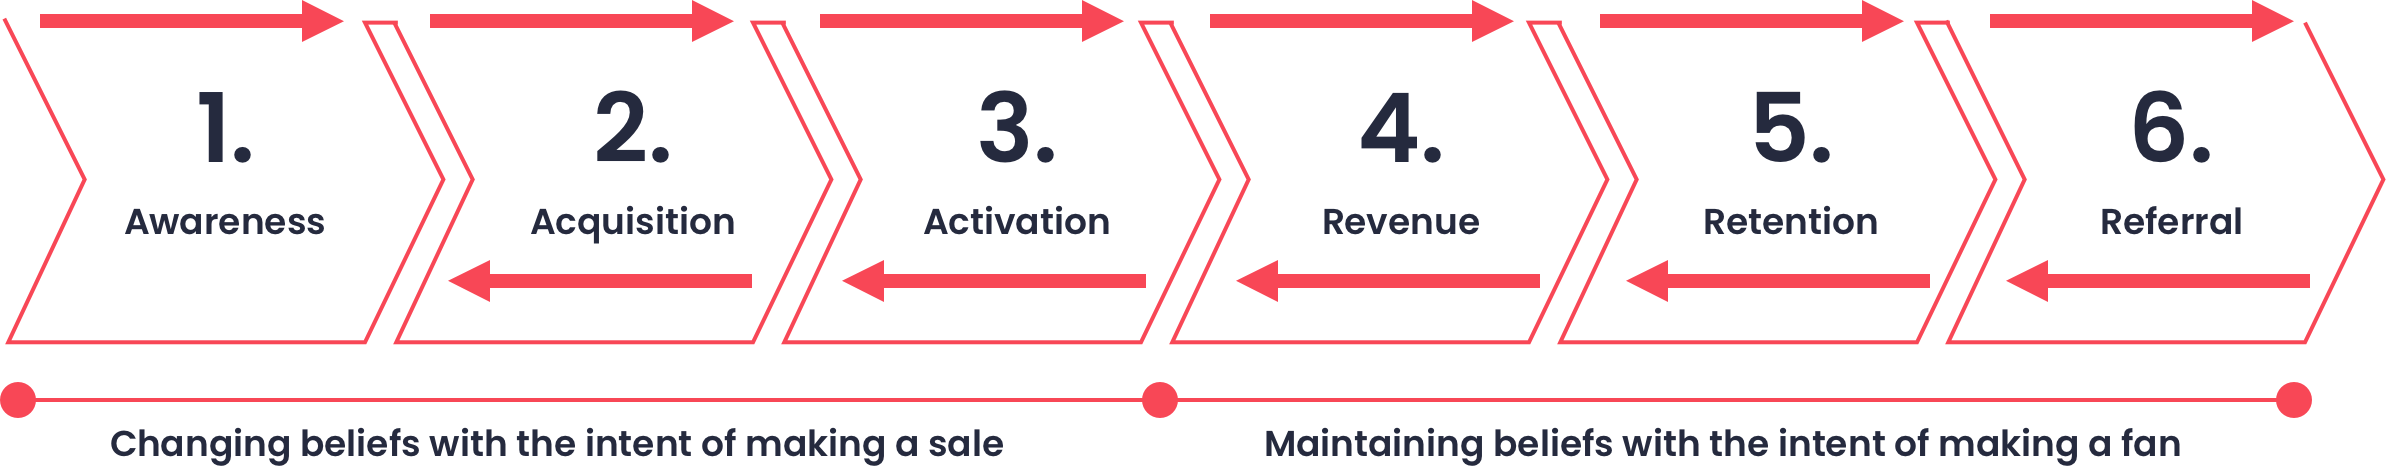 6 levers of growth@2x